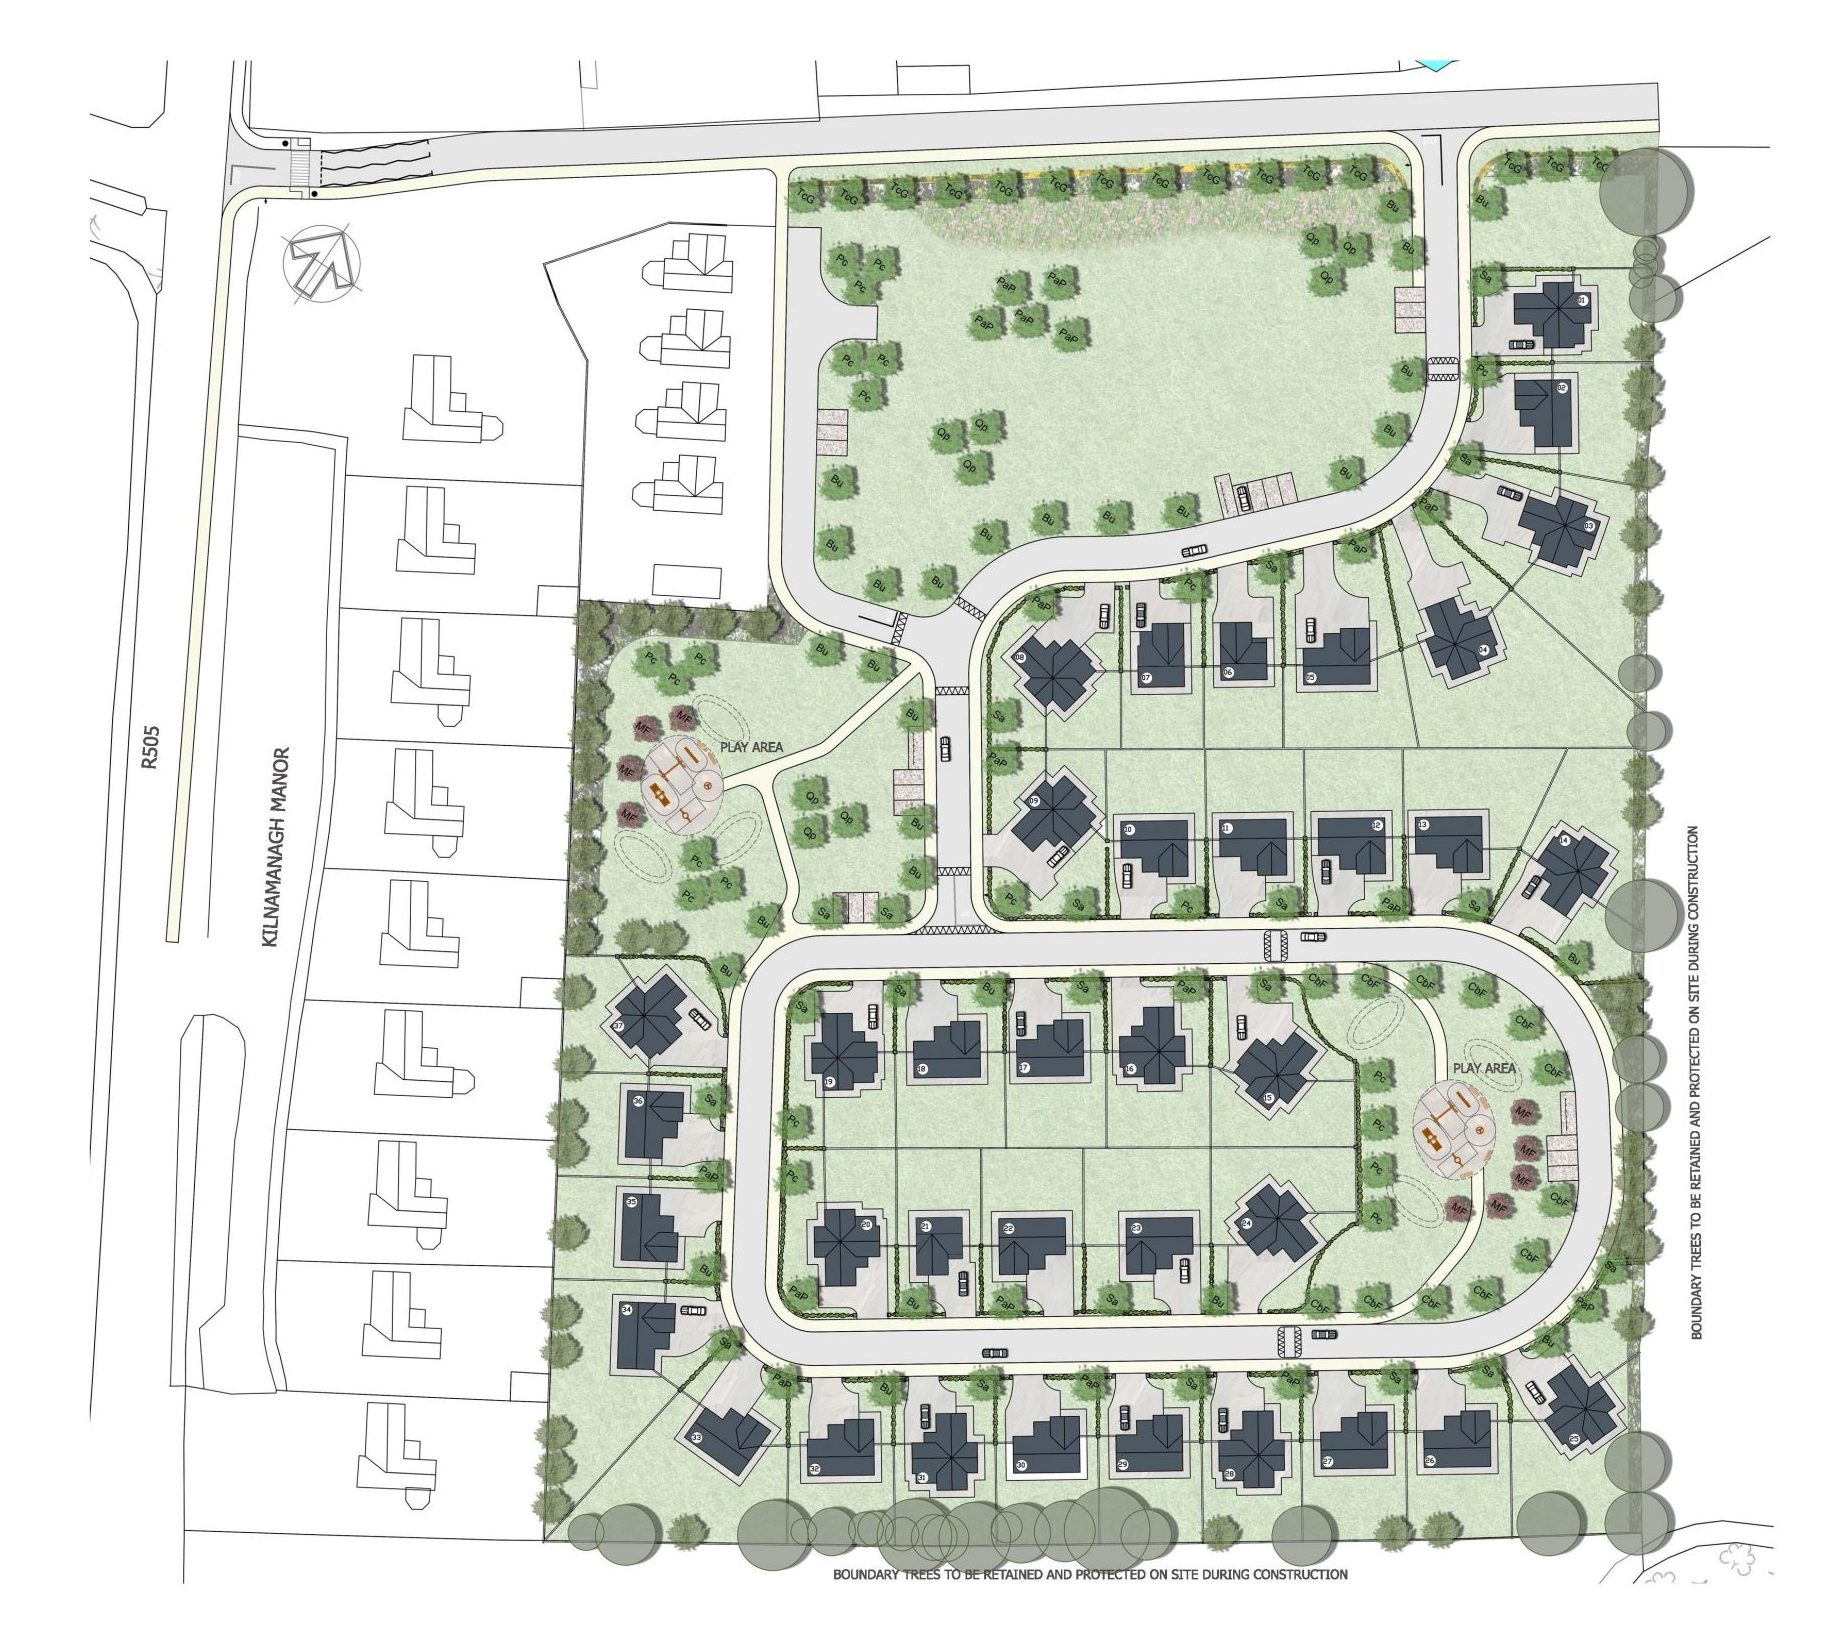 Planning Permission Granted – Dundrum, Co. Tipperary Architecture Ireland, Urban Design, Dublin/Cork/Kerry Architecture